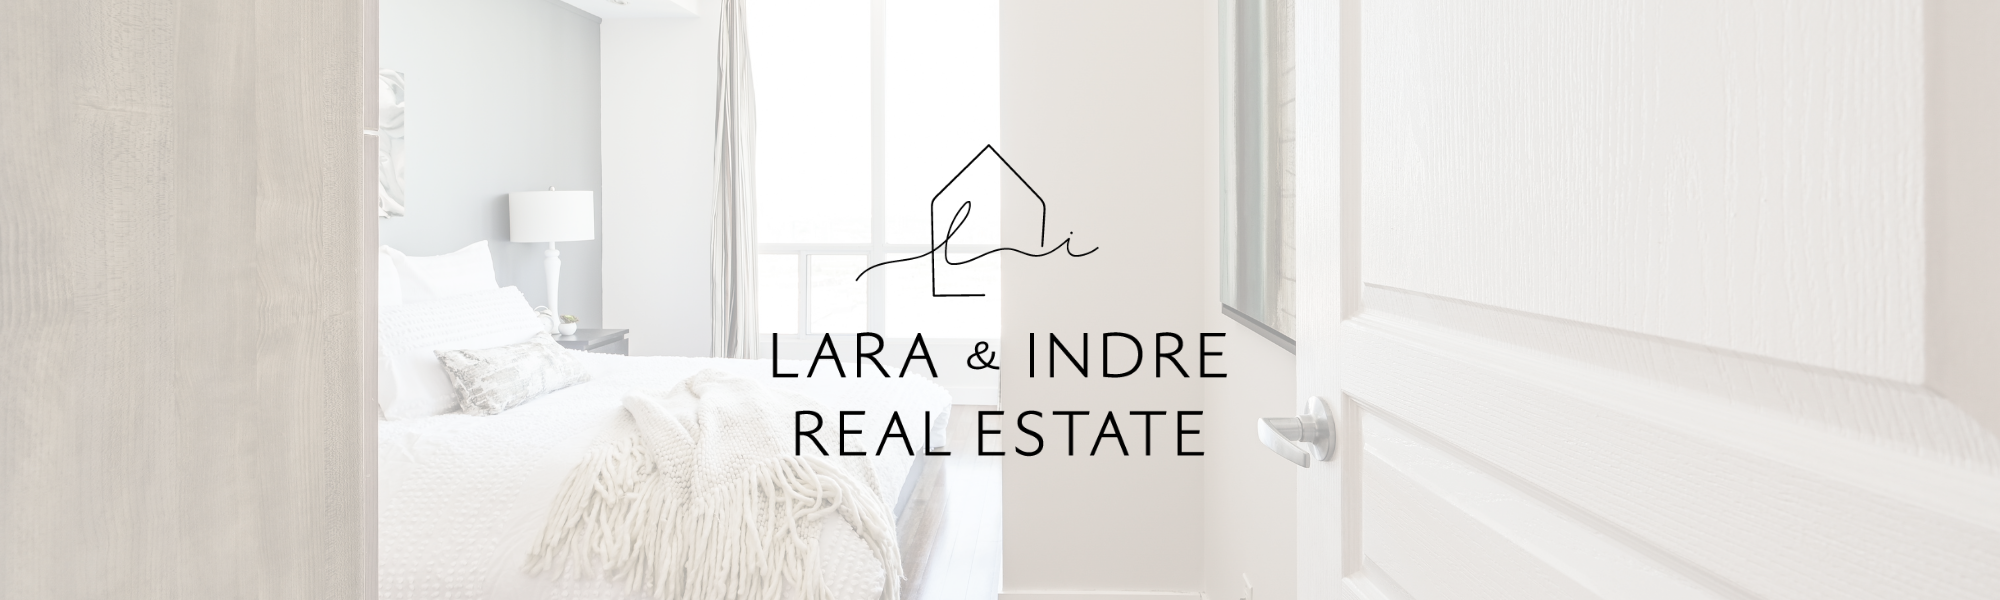 Lara and Indre Real Estate